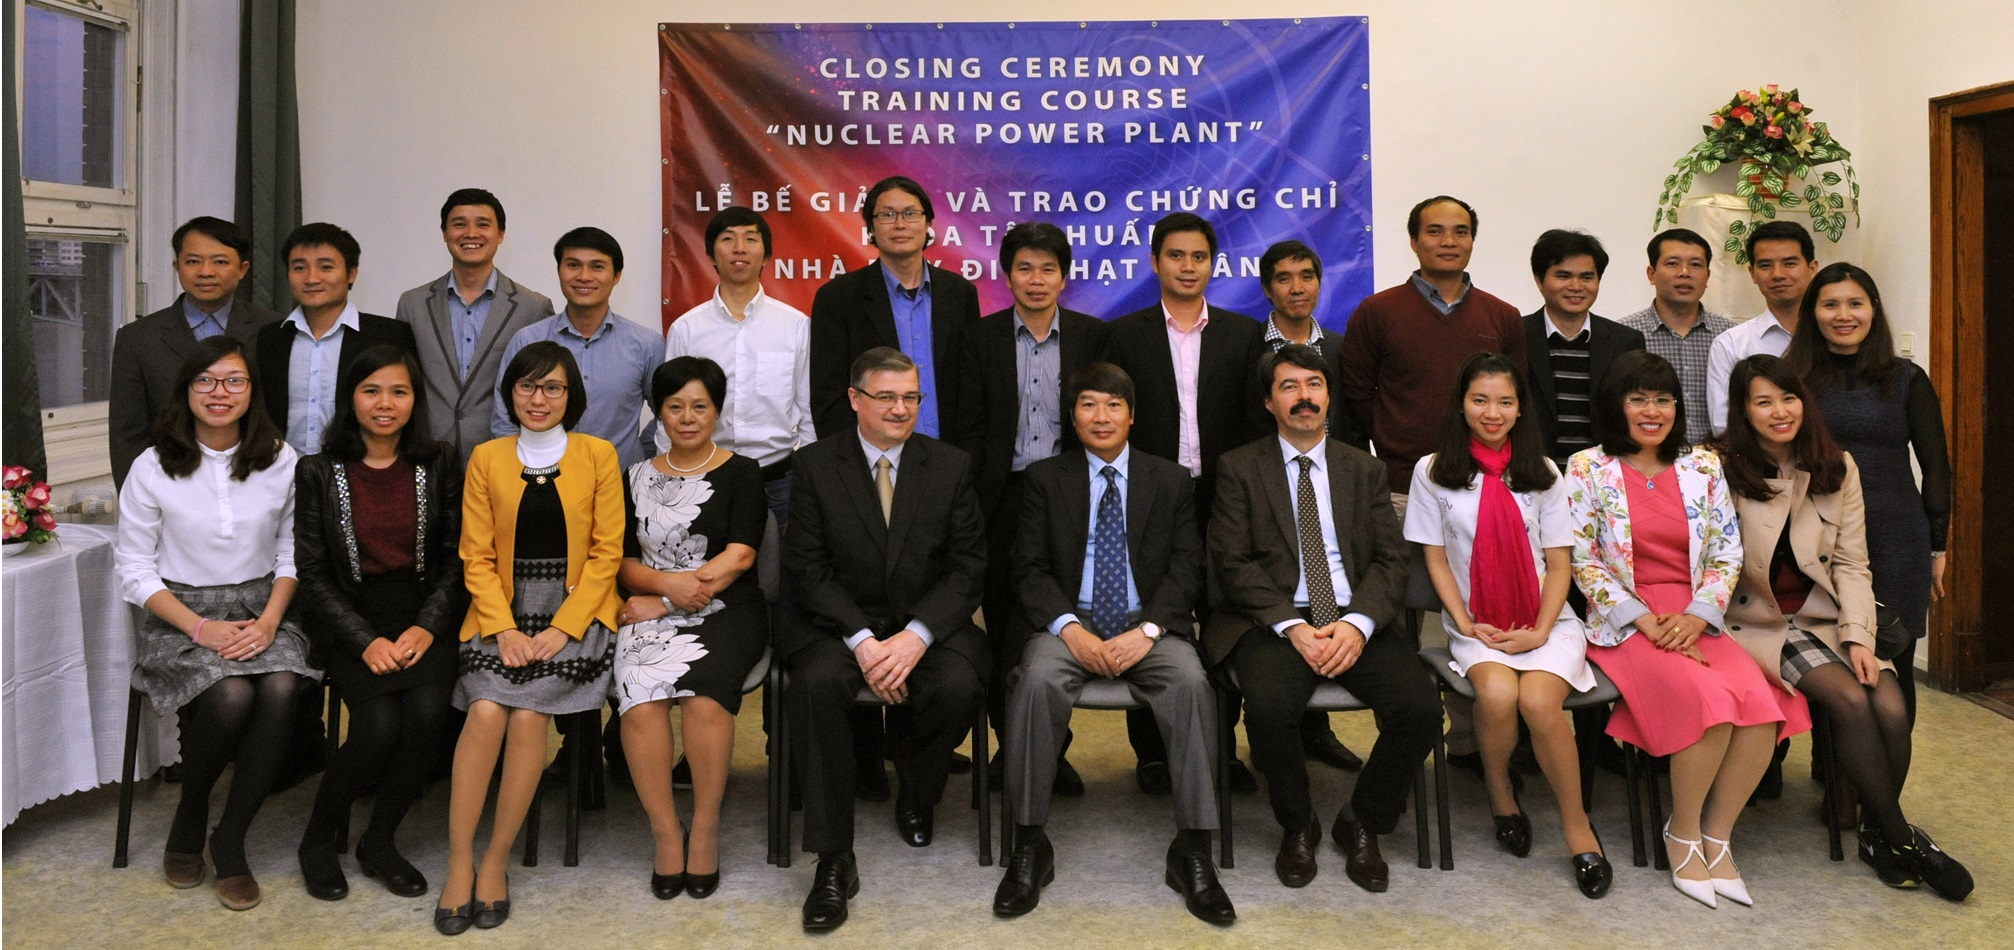 Closing ceremony of nuclear training - 2015